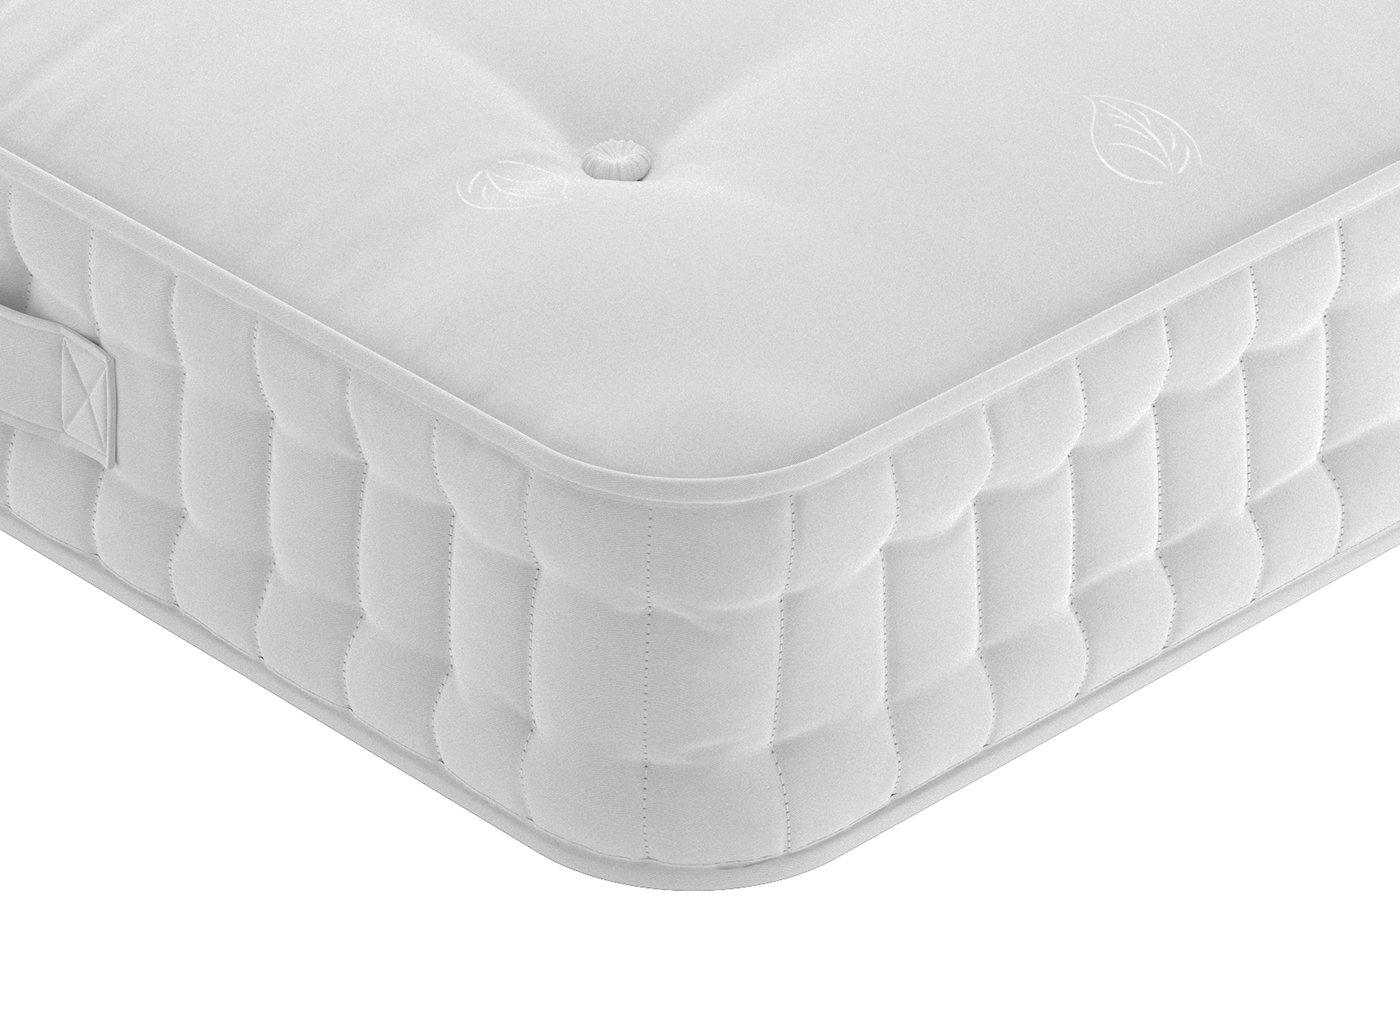 Flaxby nature's haven 2'6 mattress medium 2'6 small single